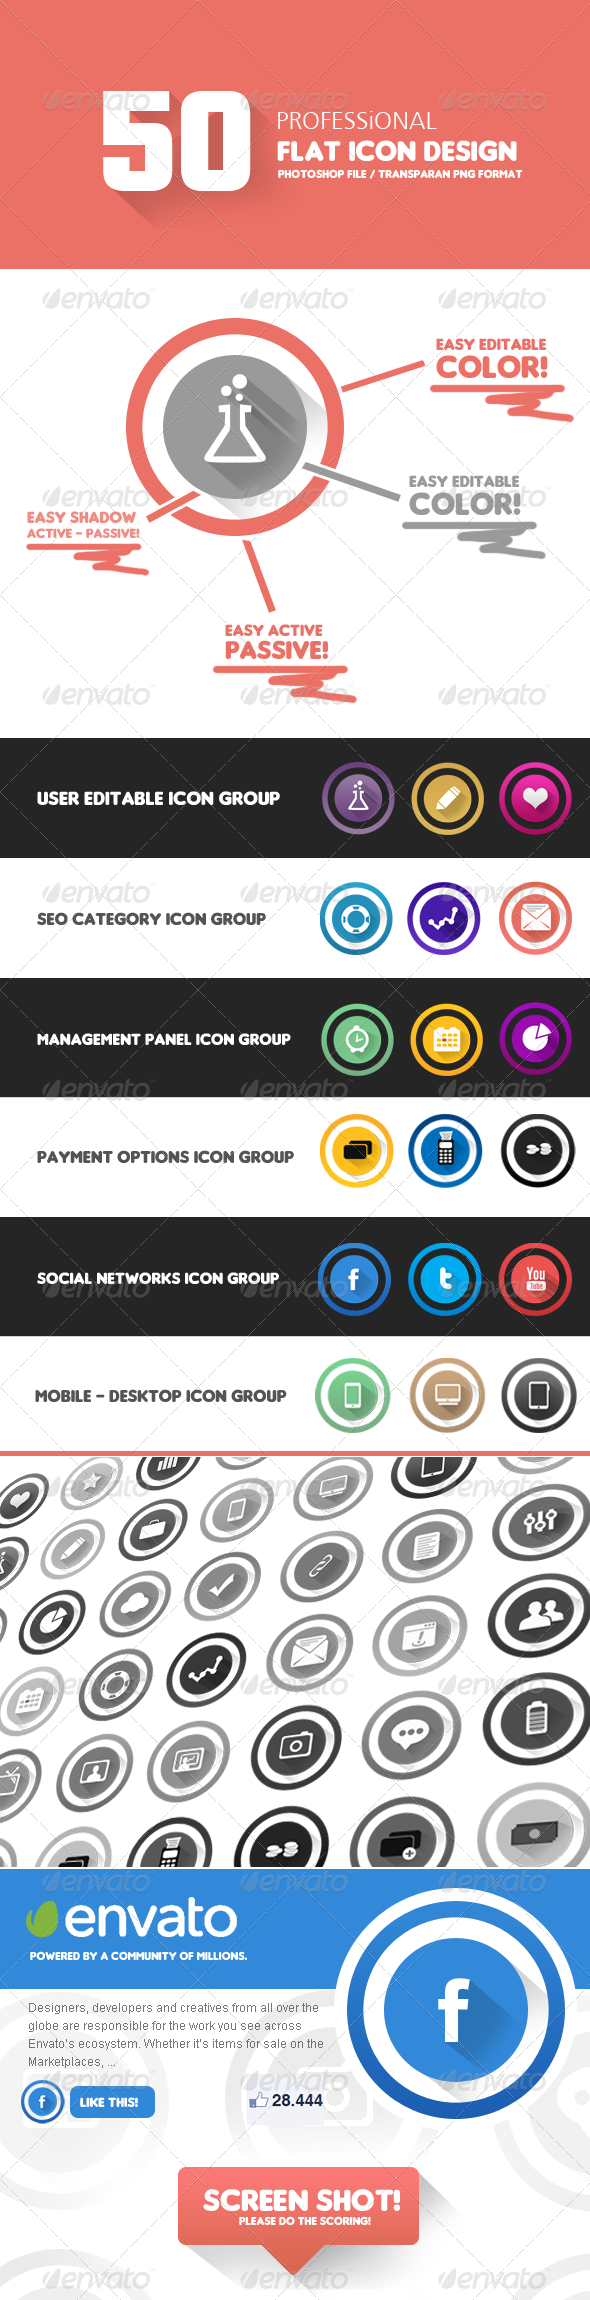 50 Piece Flat icon Design Kit - V1 - Icons